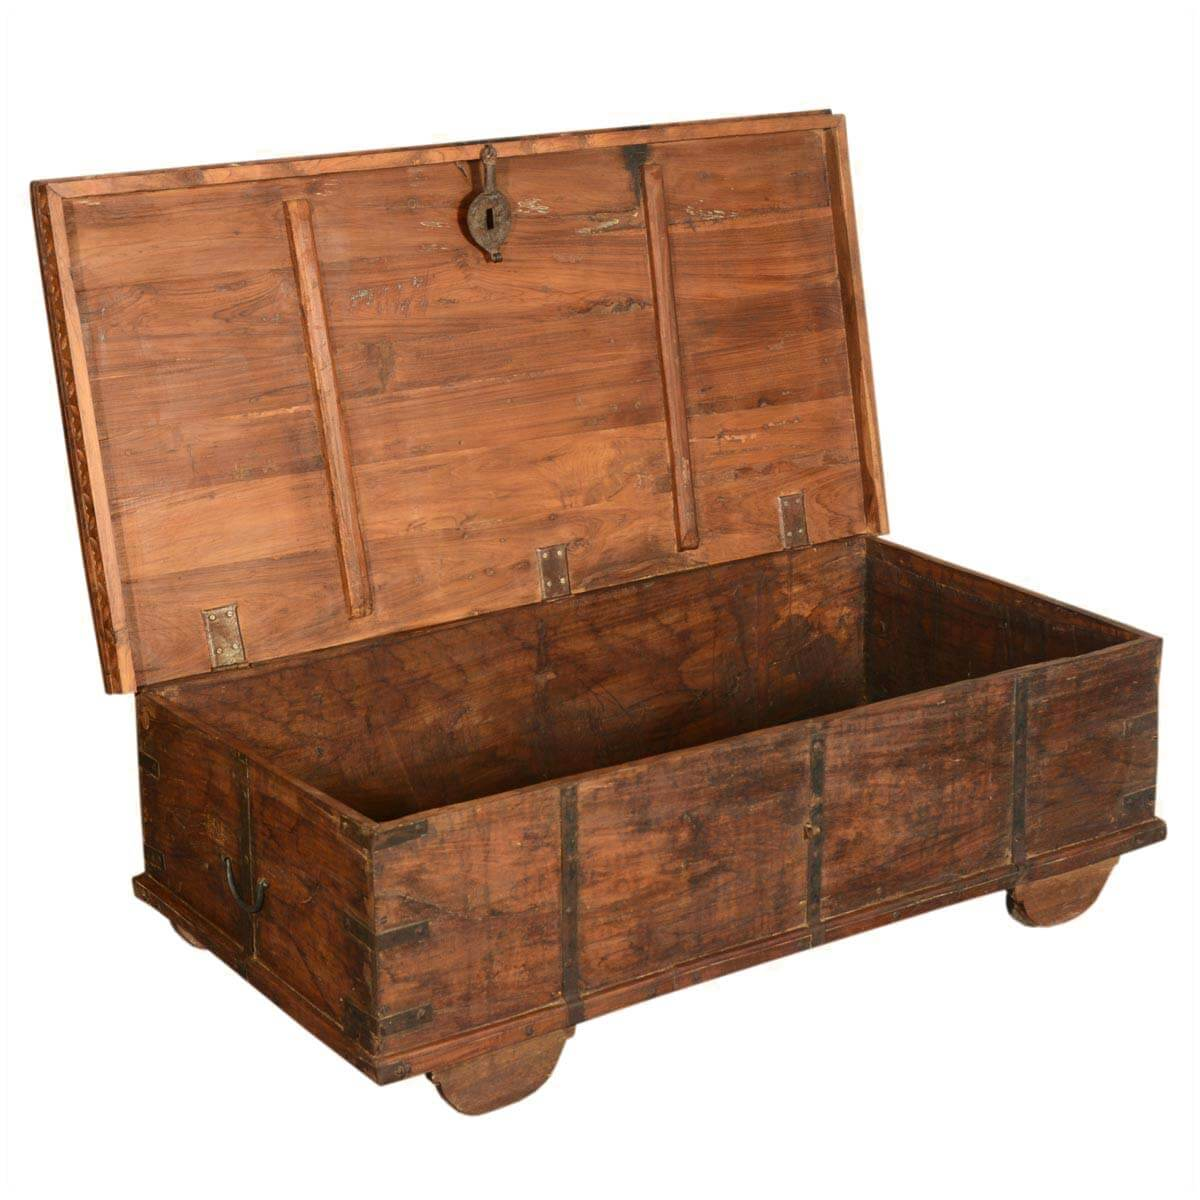 Langley reclaimed wood rustic metal accent storage trunk coffee table Trunks coffee tables